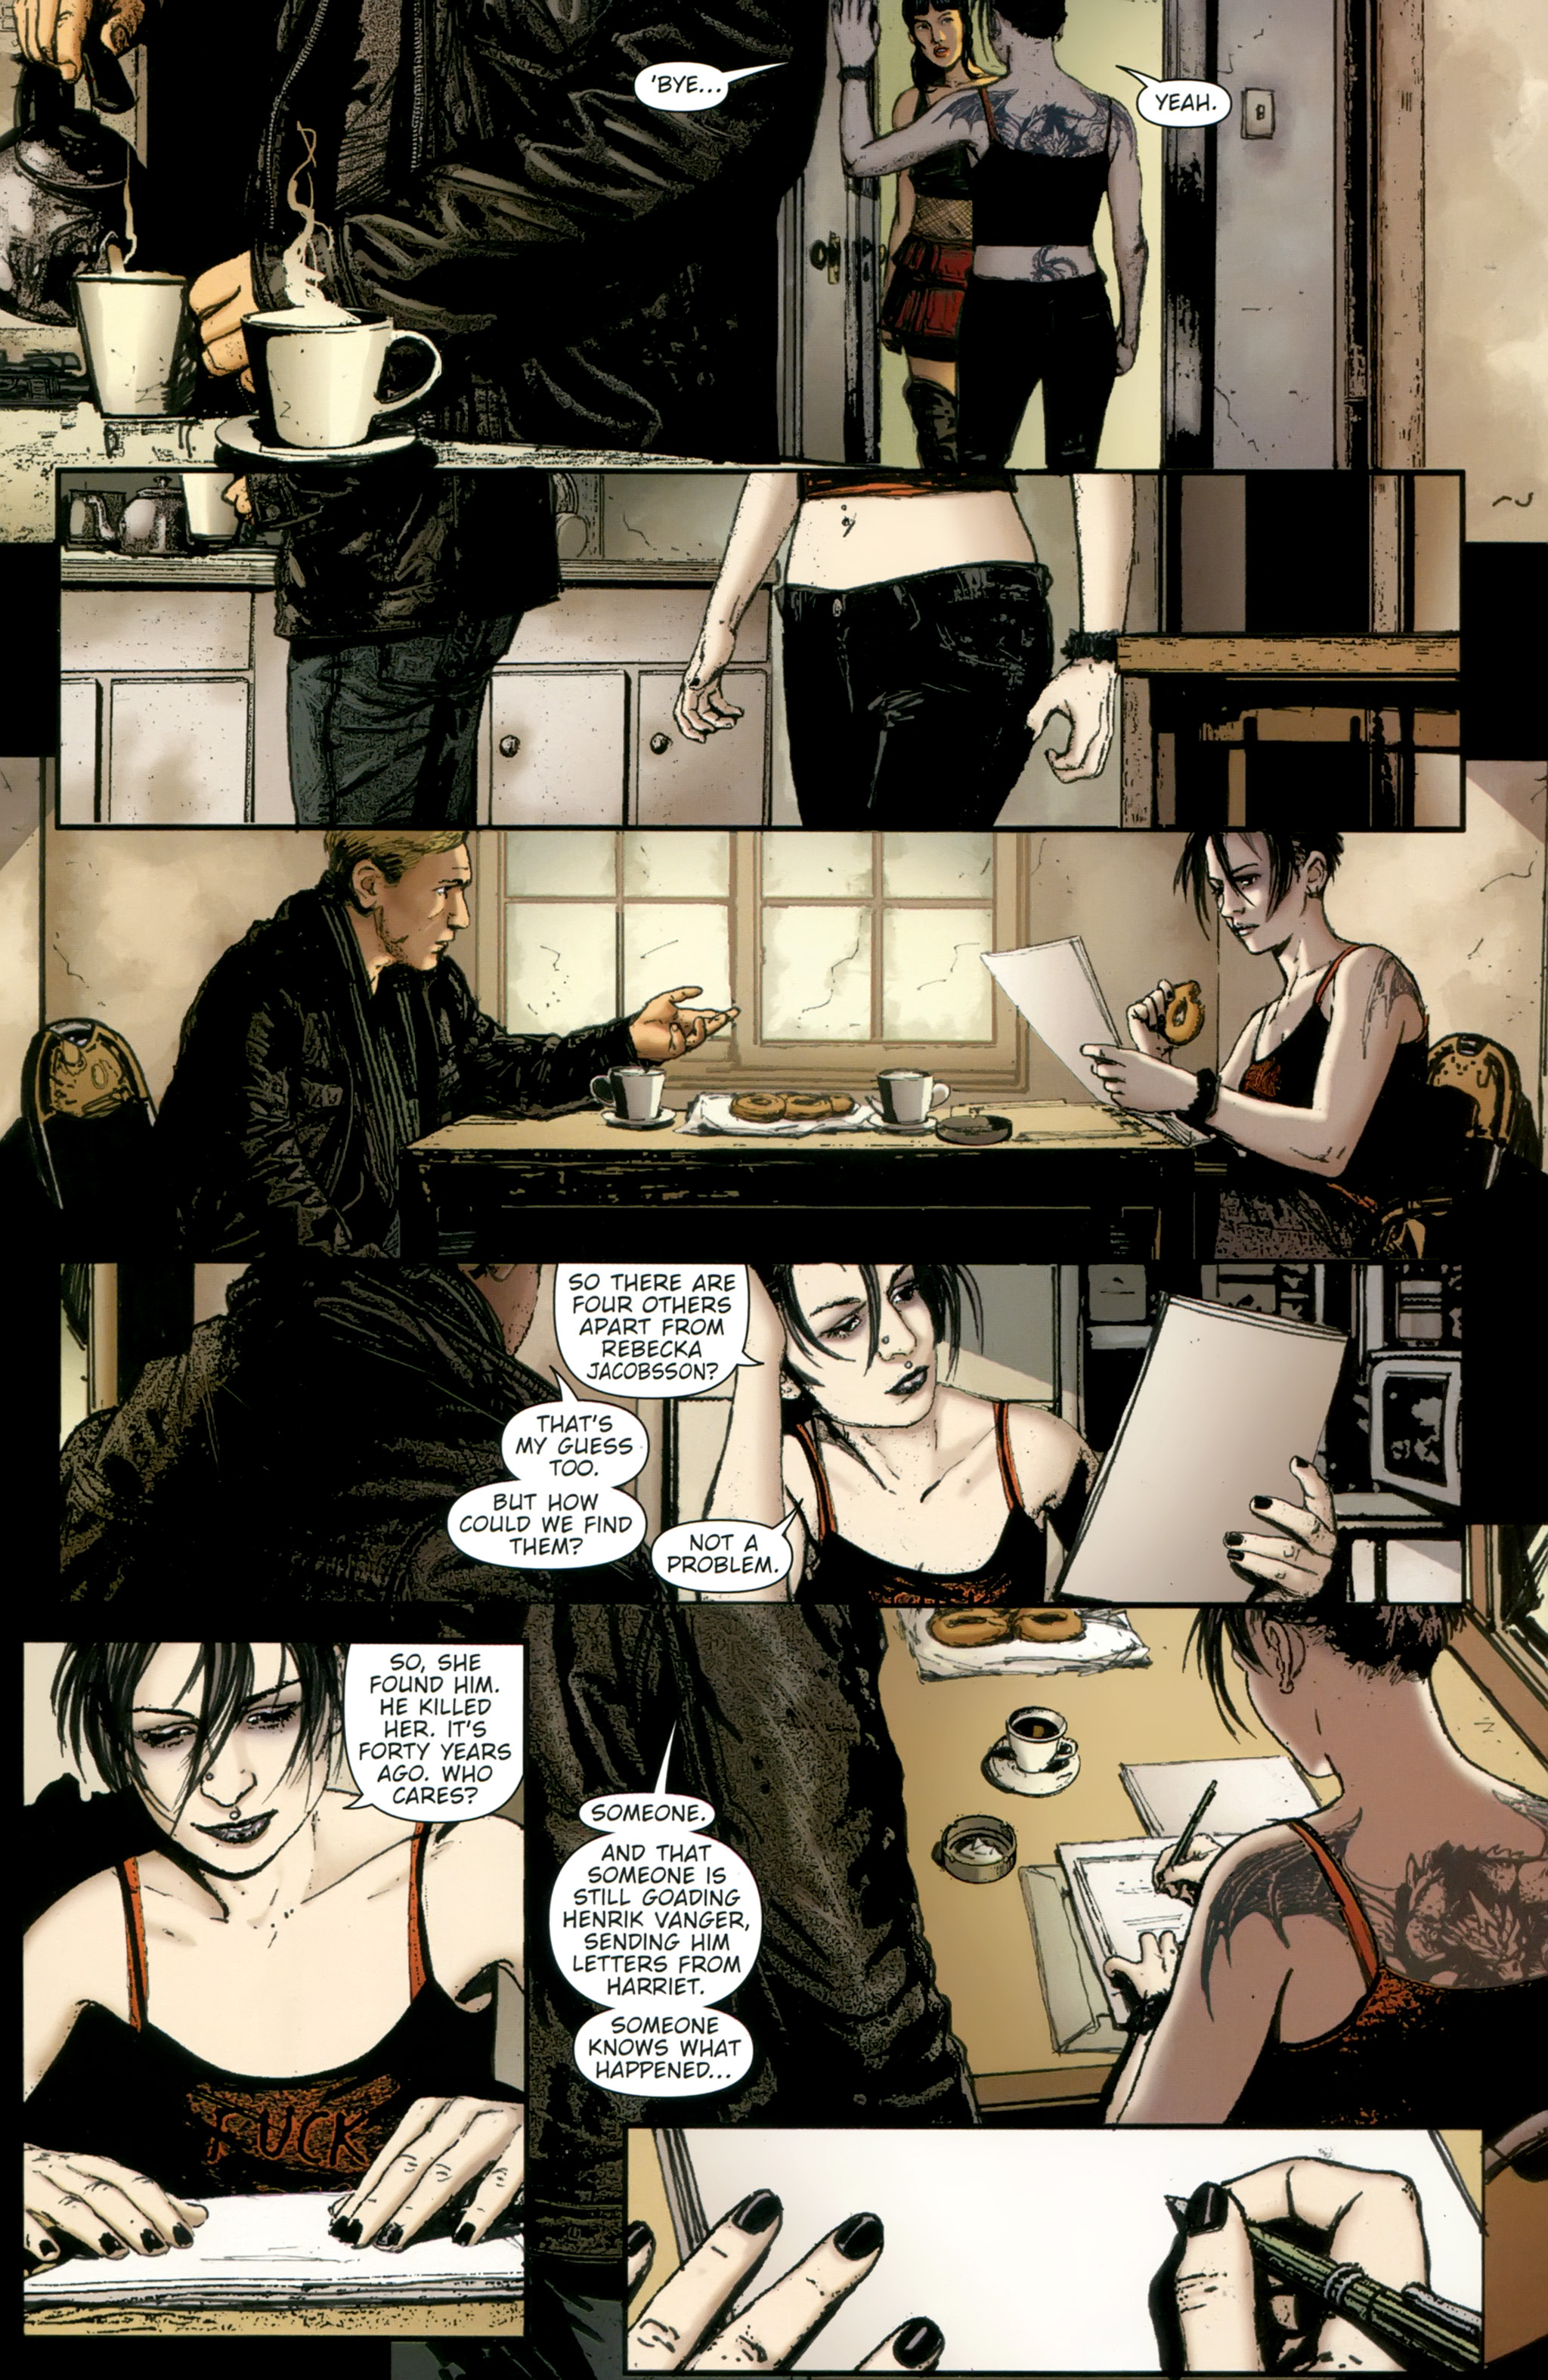 Read online The Girl With the Dragon Tattoo comic -  Issue # TPB 2 - 49